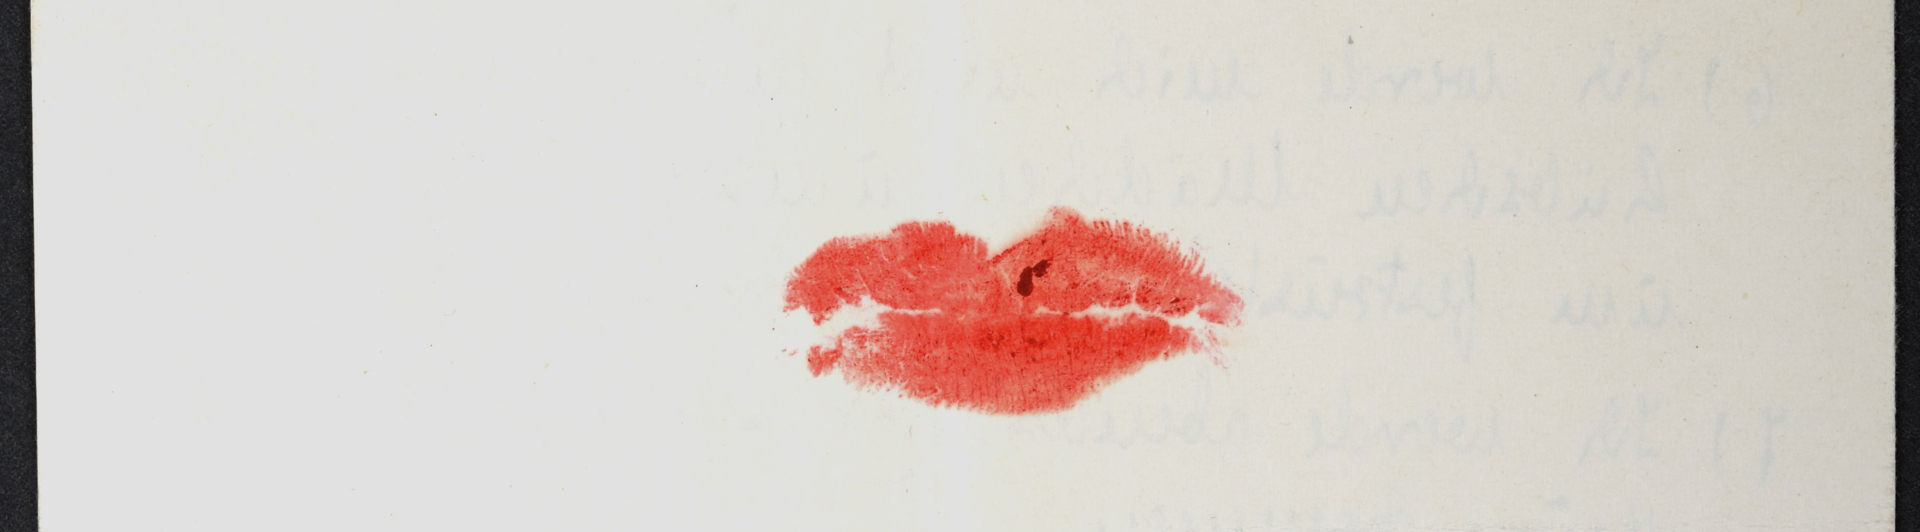 Imprint of a Kiss with red lipstick